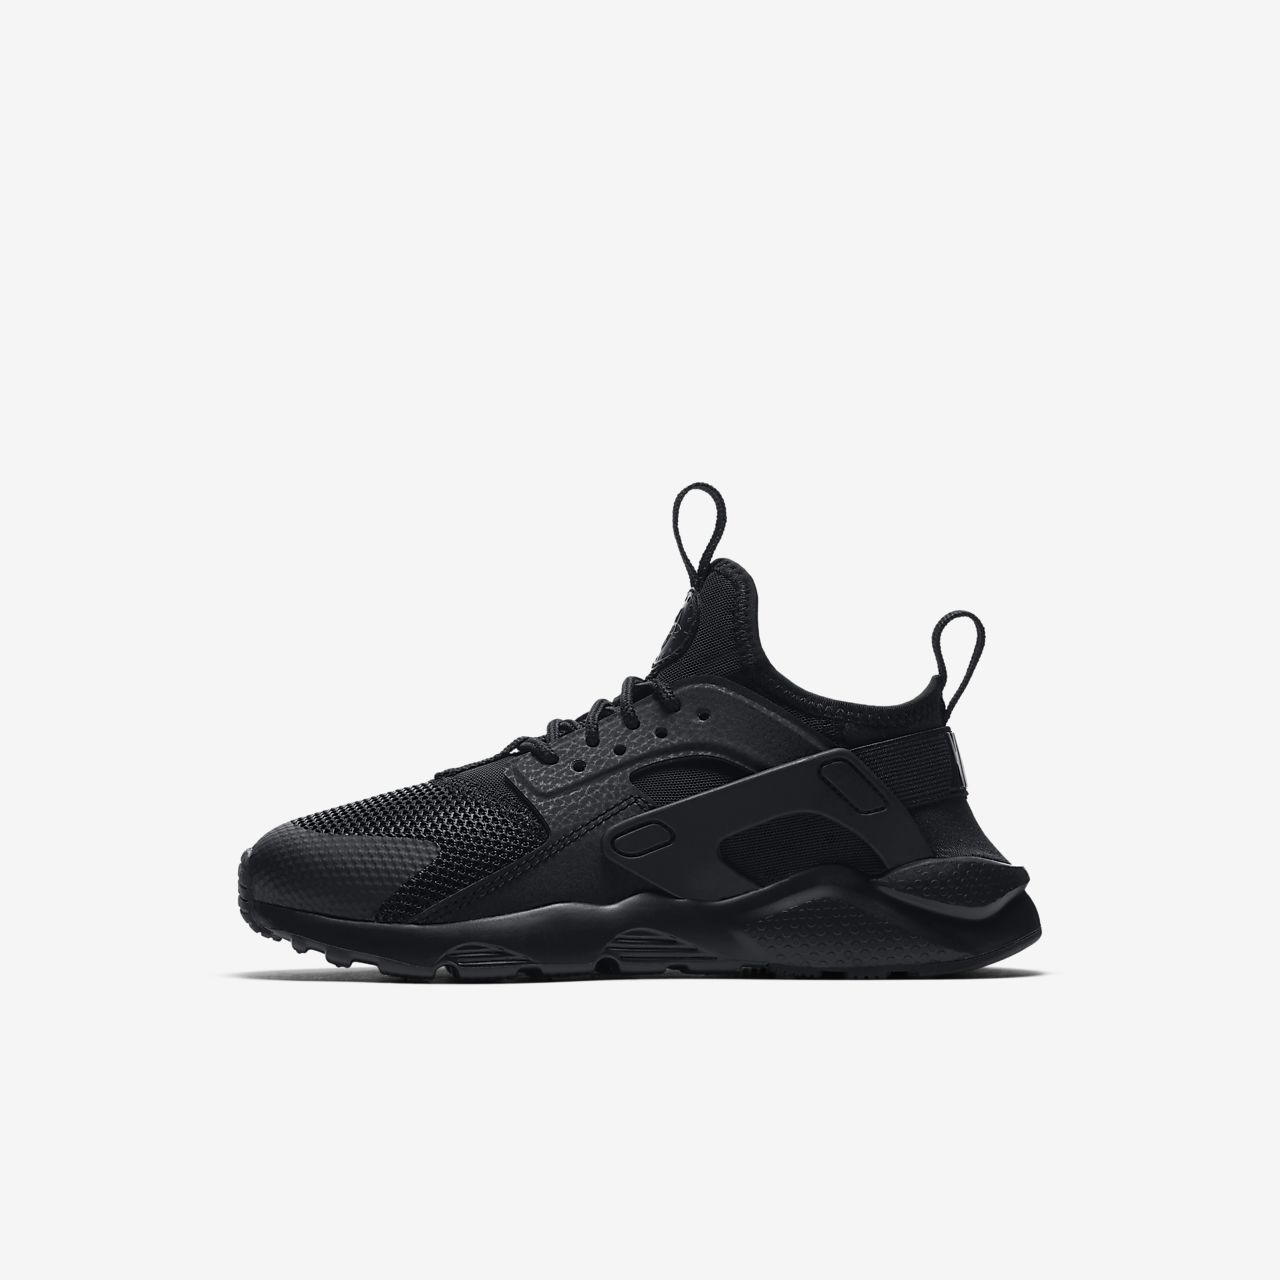 the latest 9944d 149ce ... cheapest sko nike huarache ultra för små barn 8b7f5 fb908